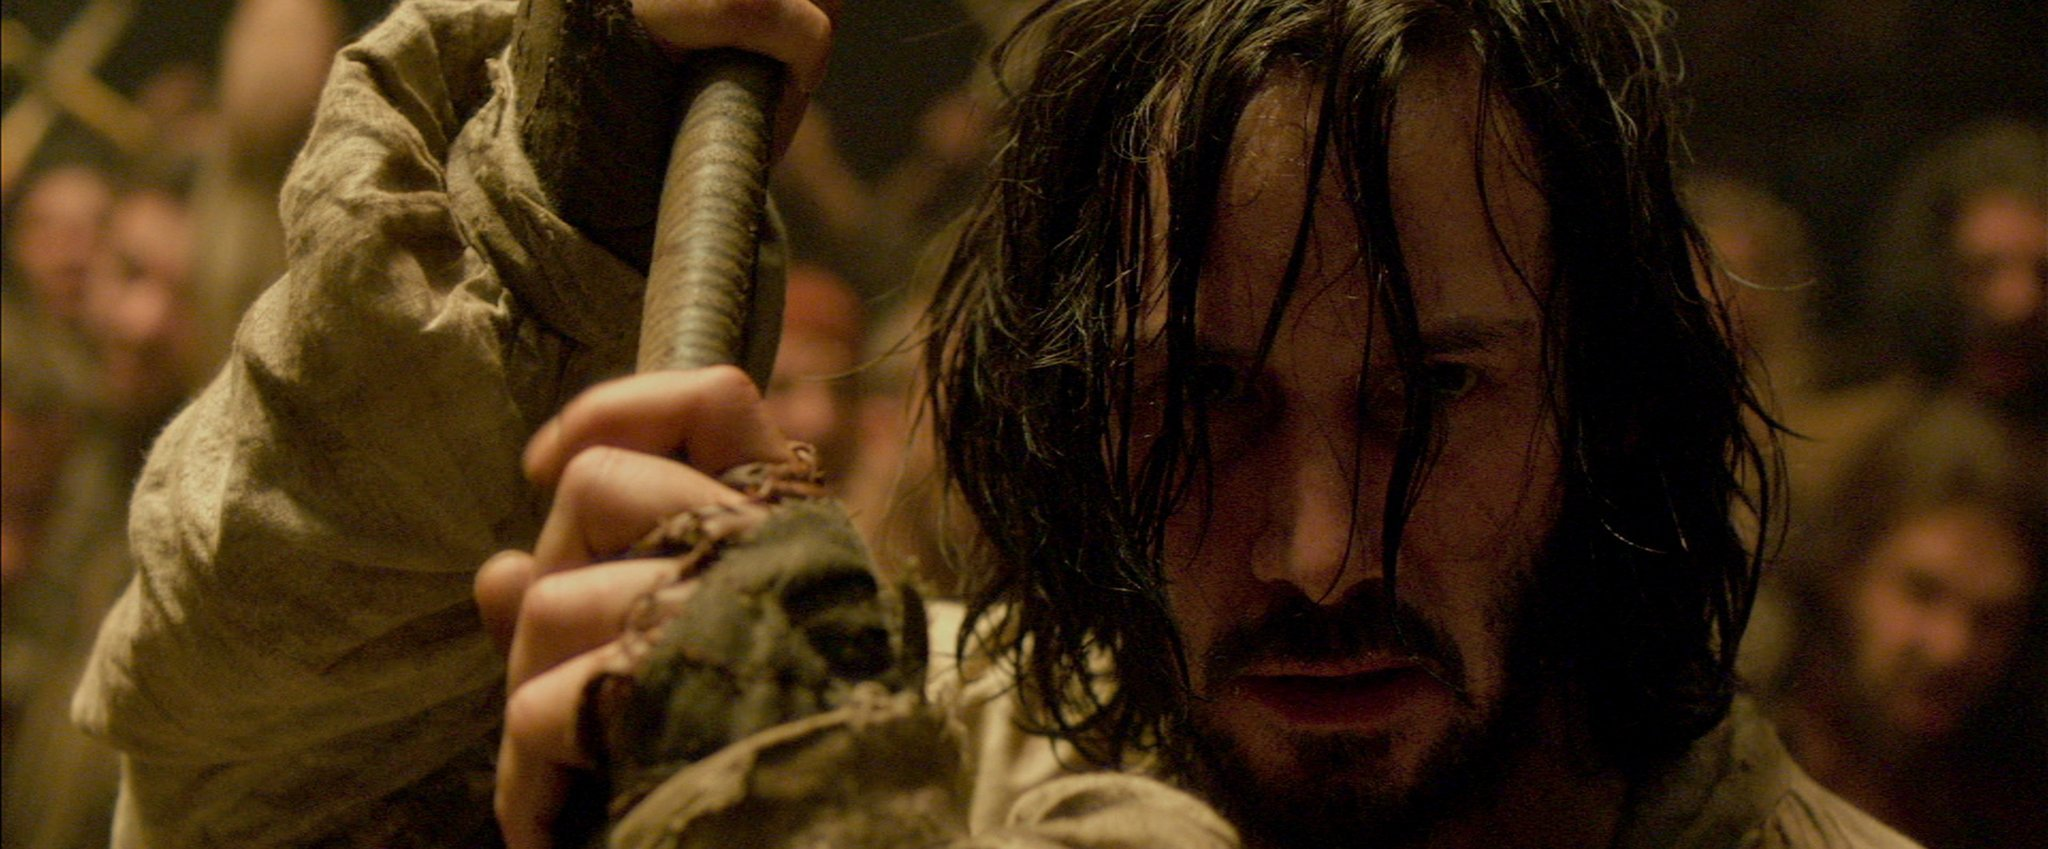 download 47 ronin movie for ipodiphoneipad in hd divx